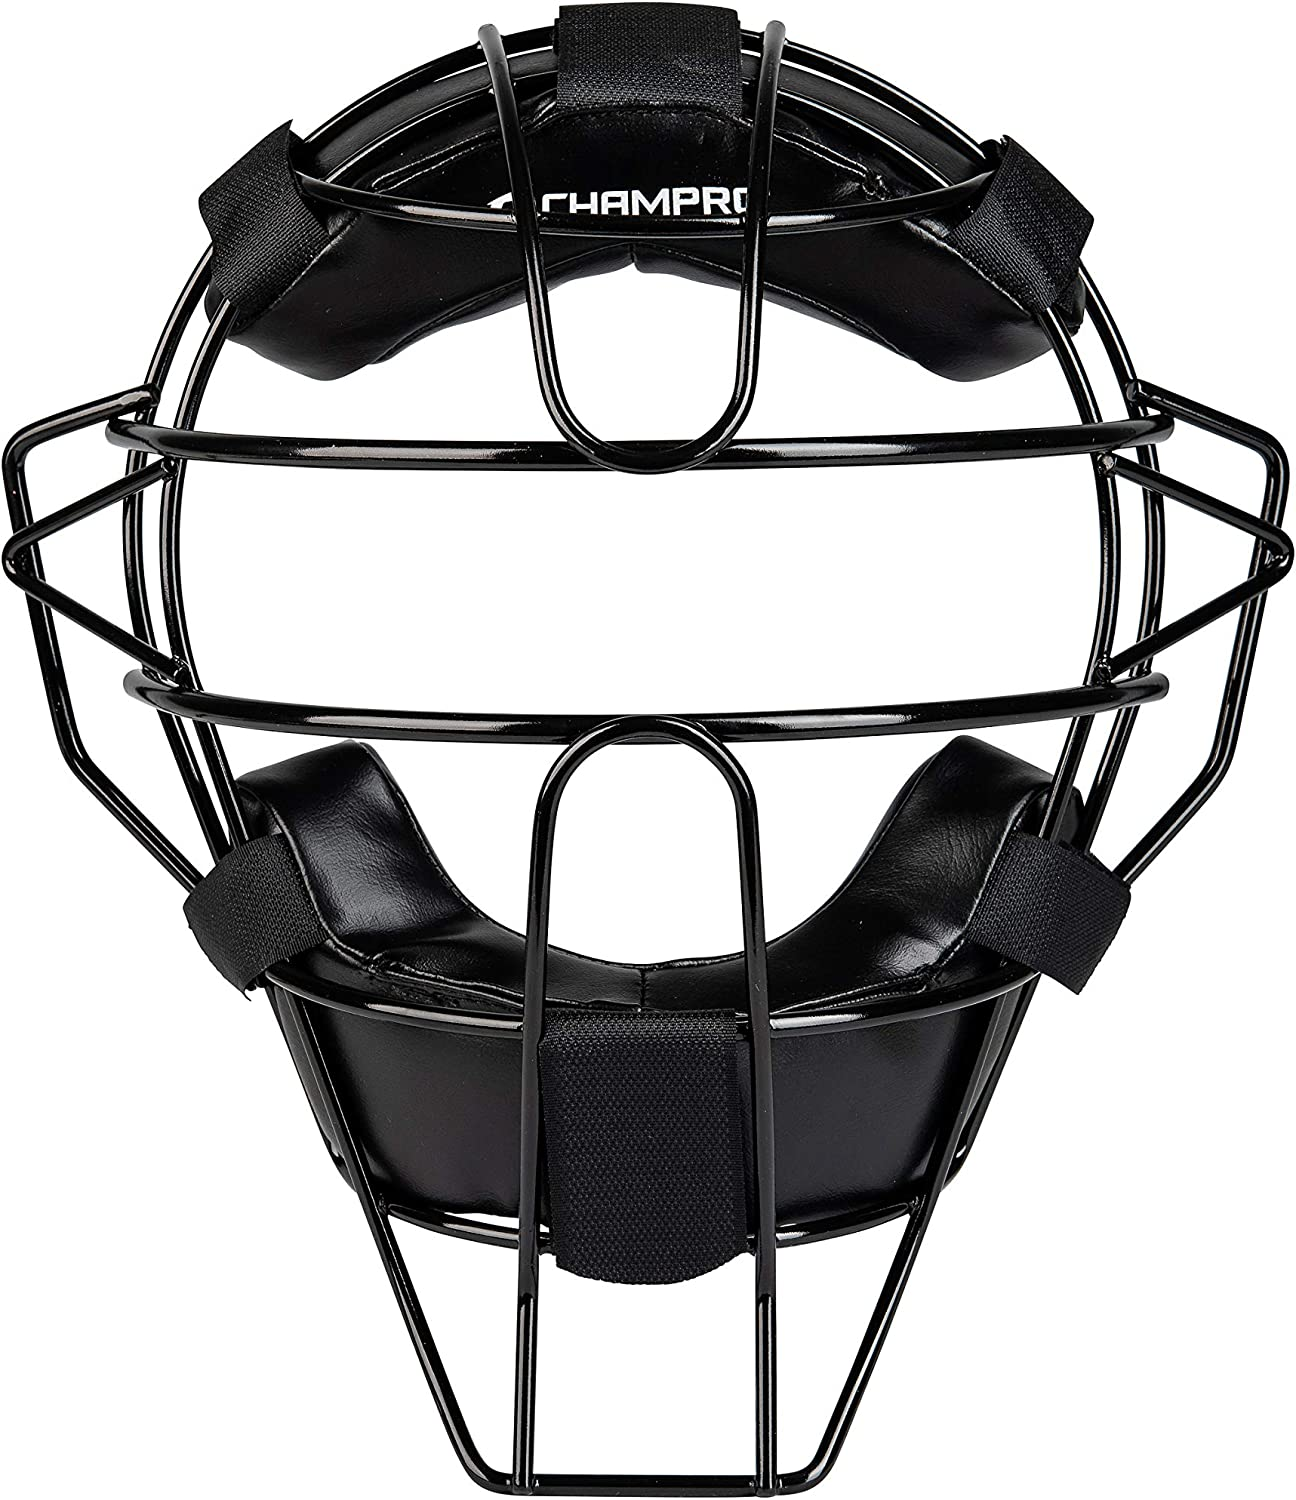 Champro Catcher's Mask low-pricing Washington Mall Black 27-Ounce Adult